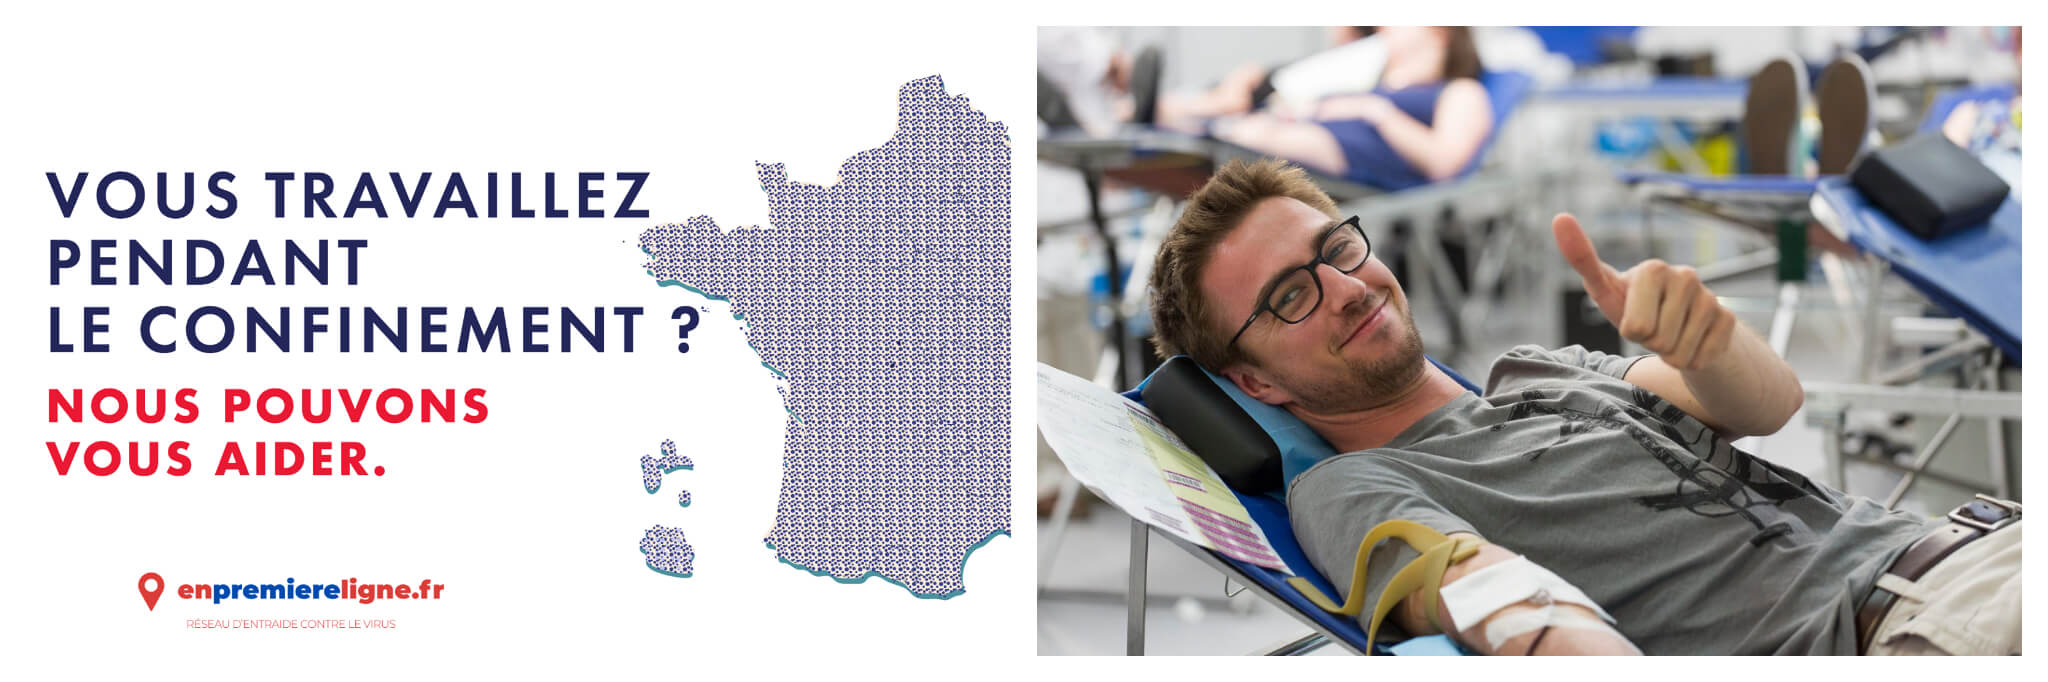 "Left: An advertisement from En Premiere Ligne reads, ""Vous travaillez pendant le confinement? Nous pouvons vous aider,"" in english, ""Are you working during the confinement? We can help you."" Right: A man in a light gray t-shirt and glasses lays down while he donates blood, he smiles and gestures a thumbs-up at the camera"